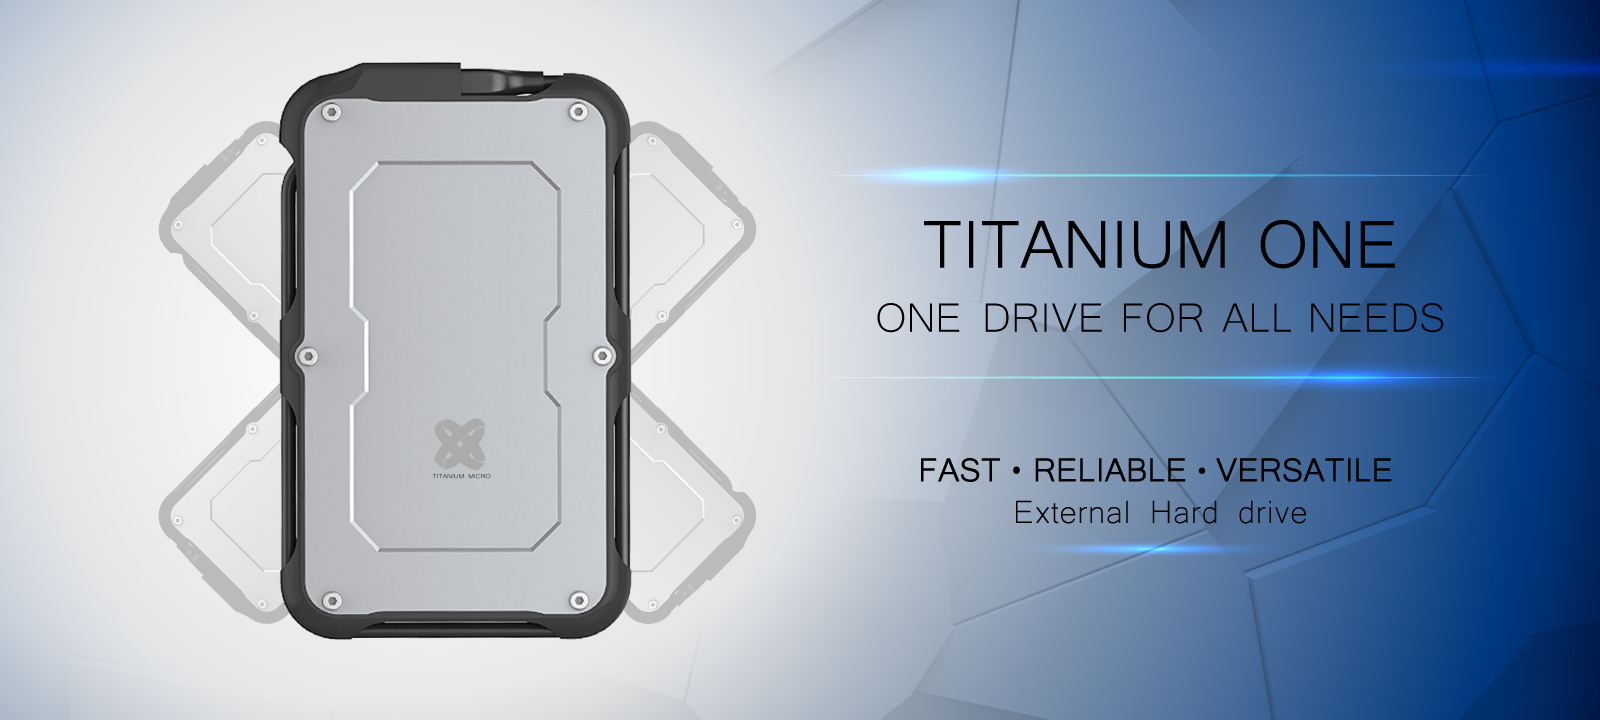 Tough external ssd titanium one fast reliable versatile external hard drive one drive for all needs